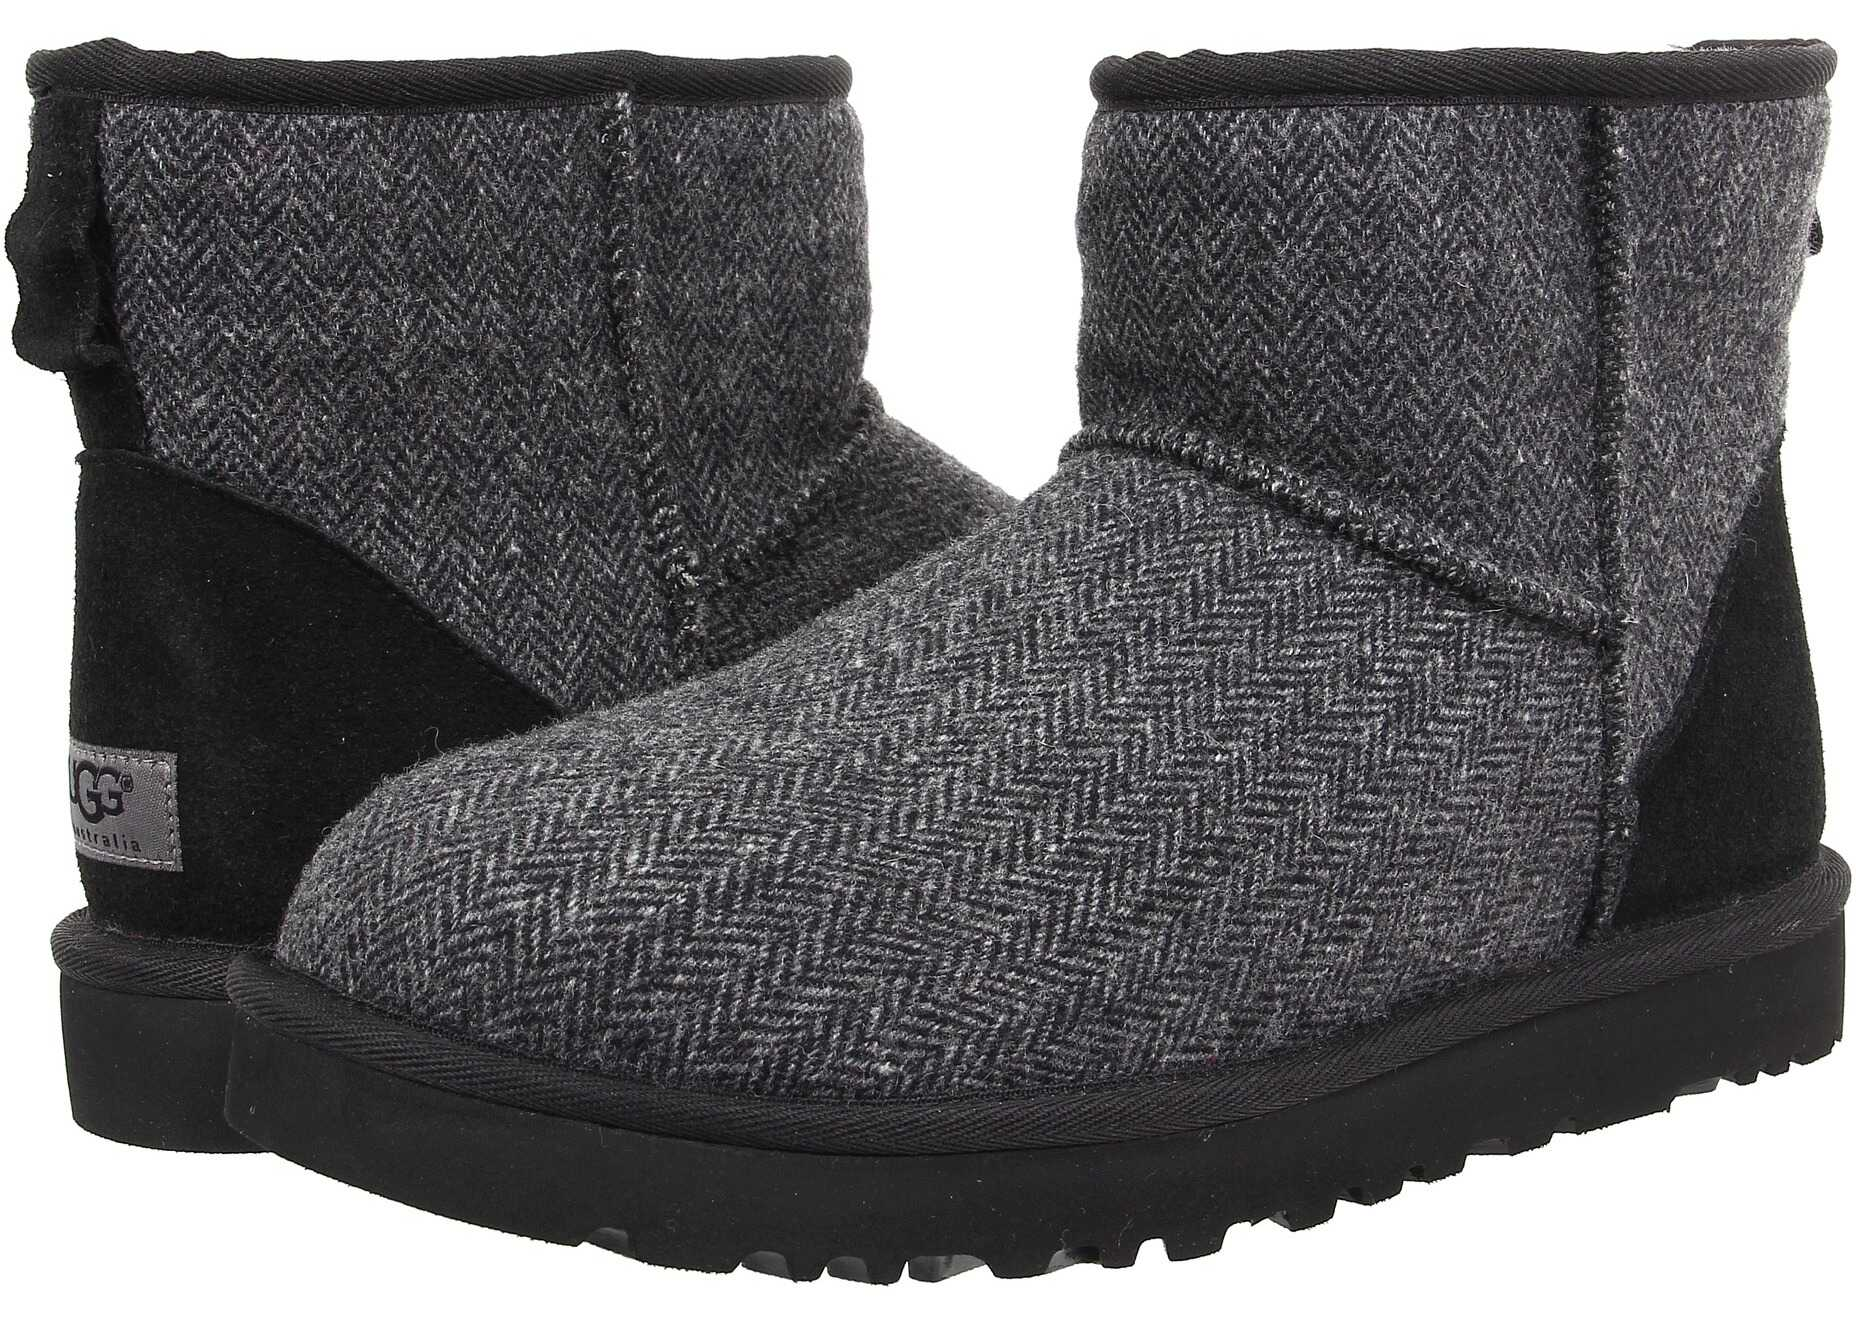 Ghete Barbati Ugg Classic Mini Tweed Black Wool